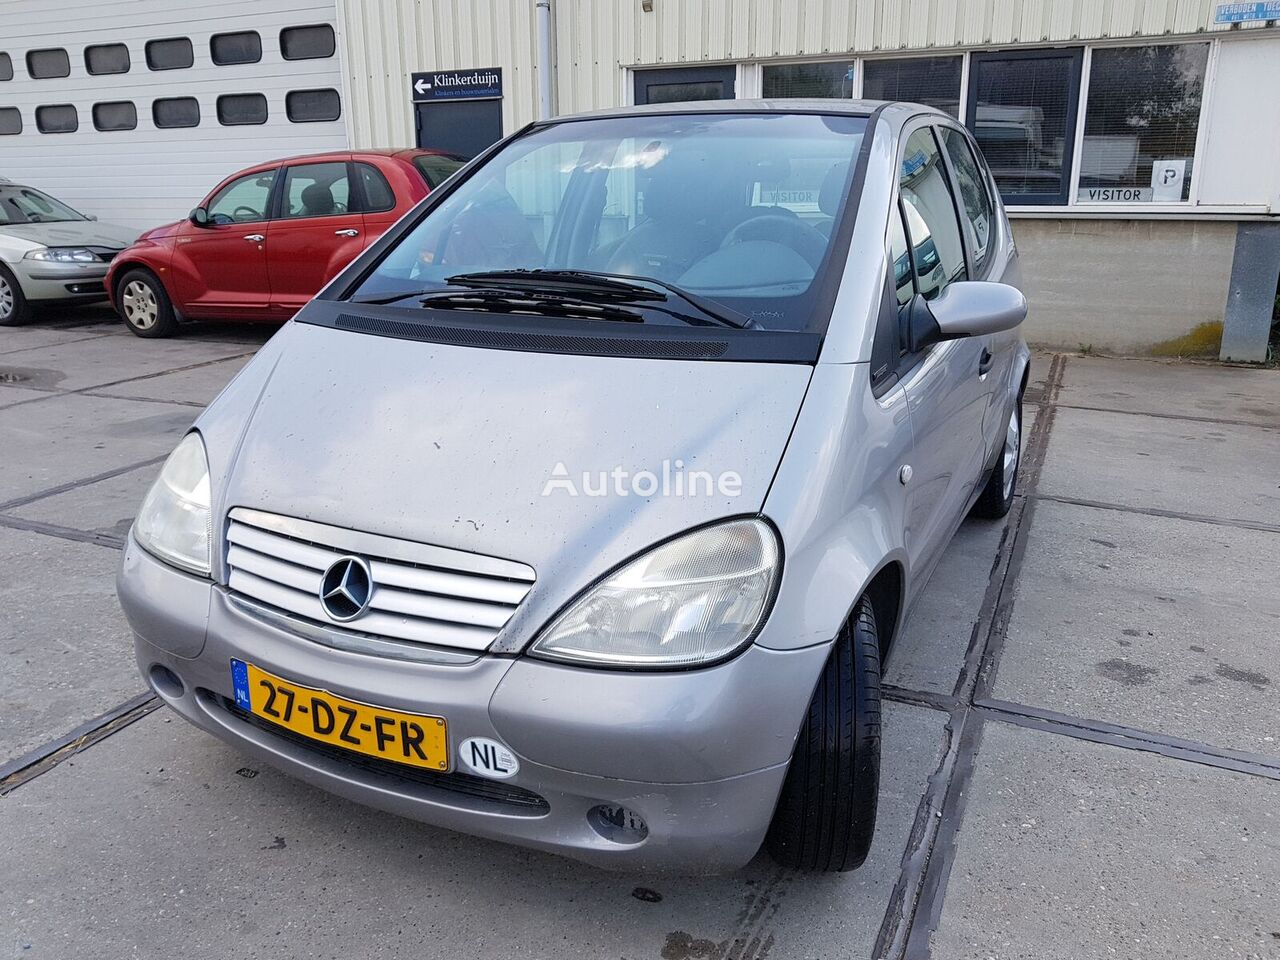 MERCEDES-BENZ A 160 Avantgarde / Airco / Manual auto